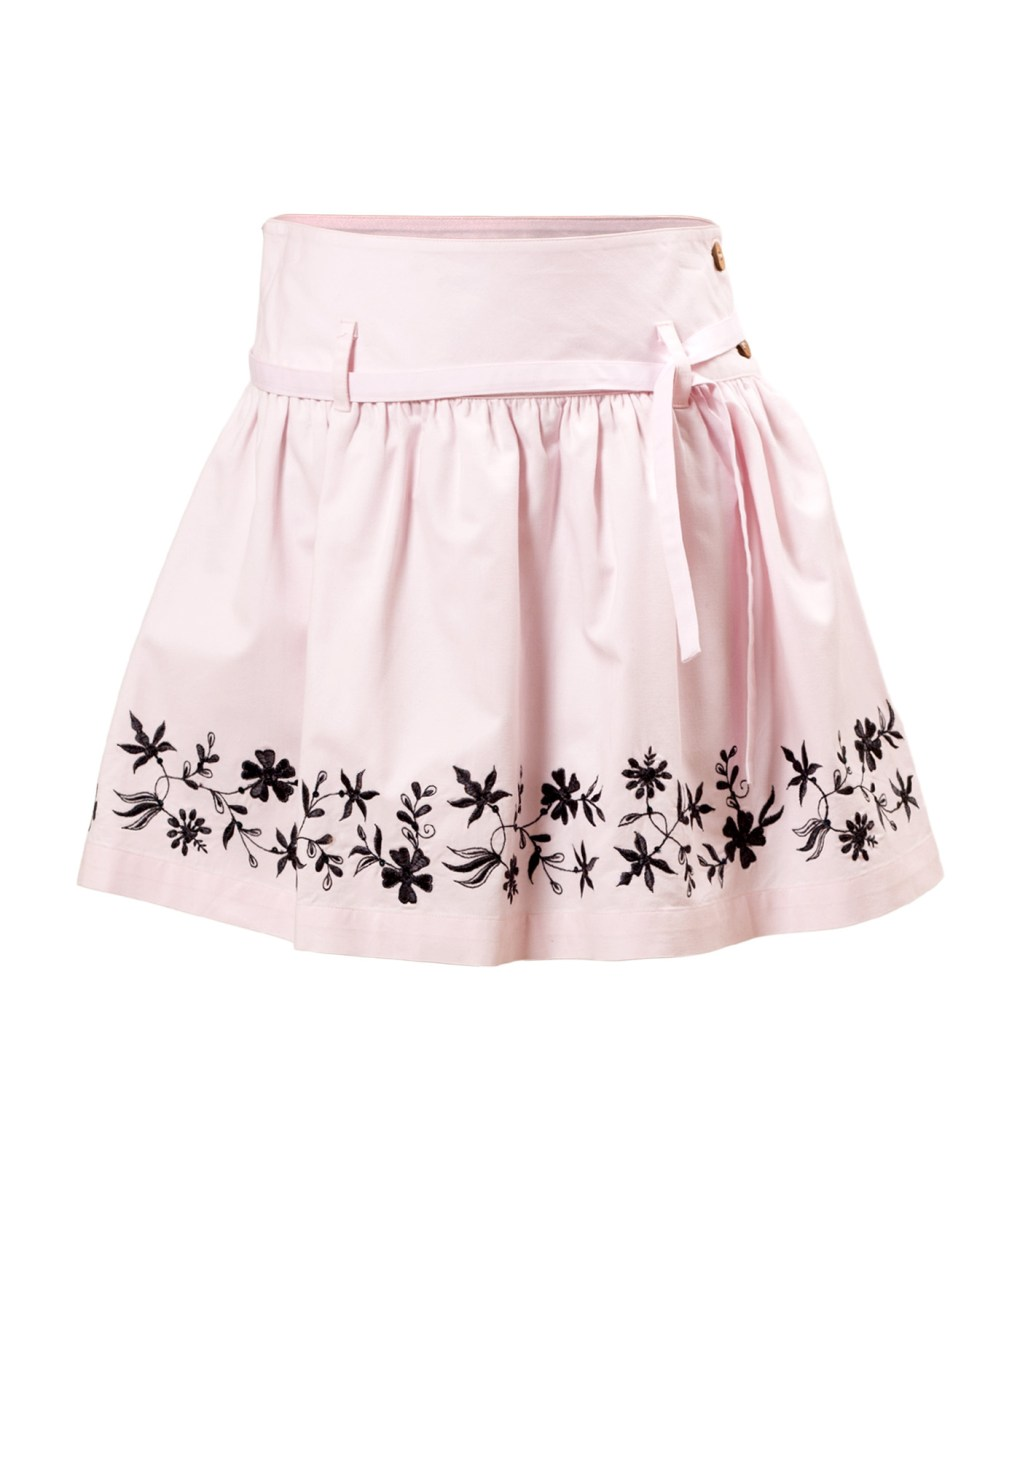 MINC Petite Girls Embroidered Skirt in Pink Cotton Twill